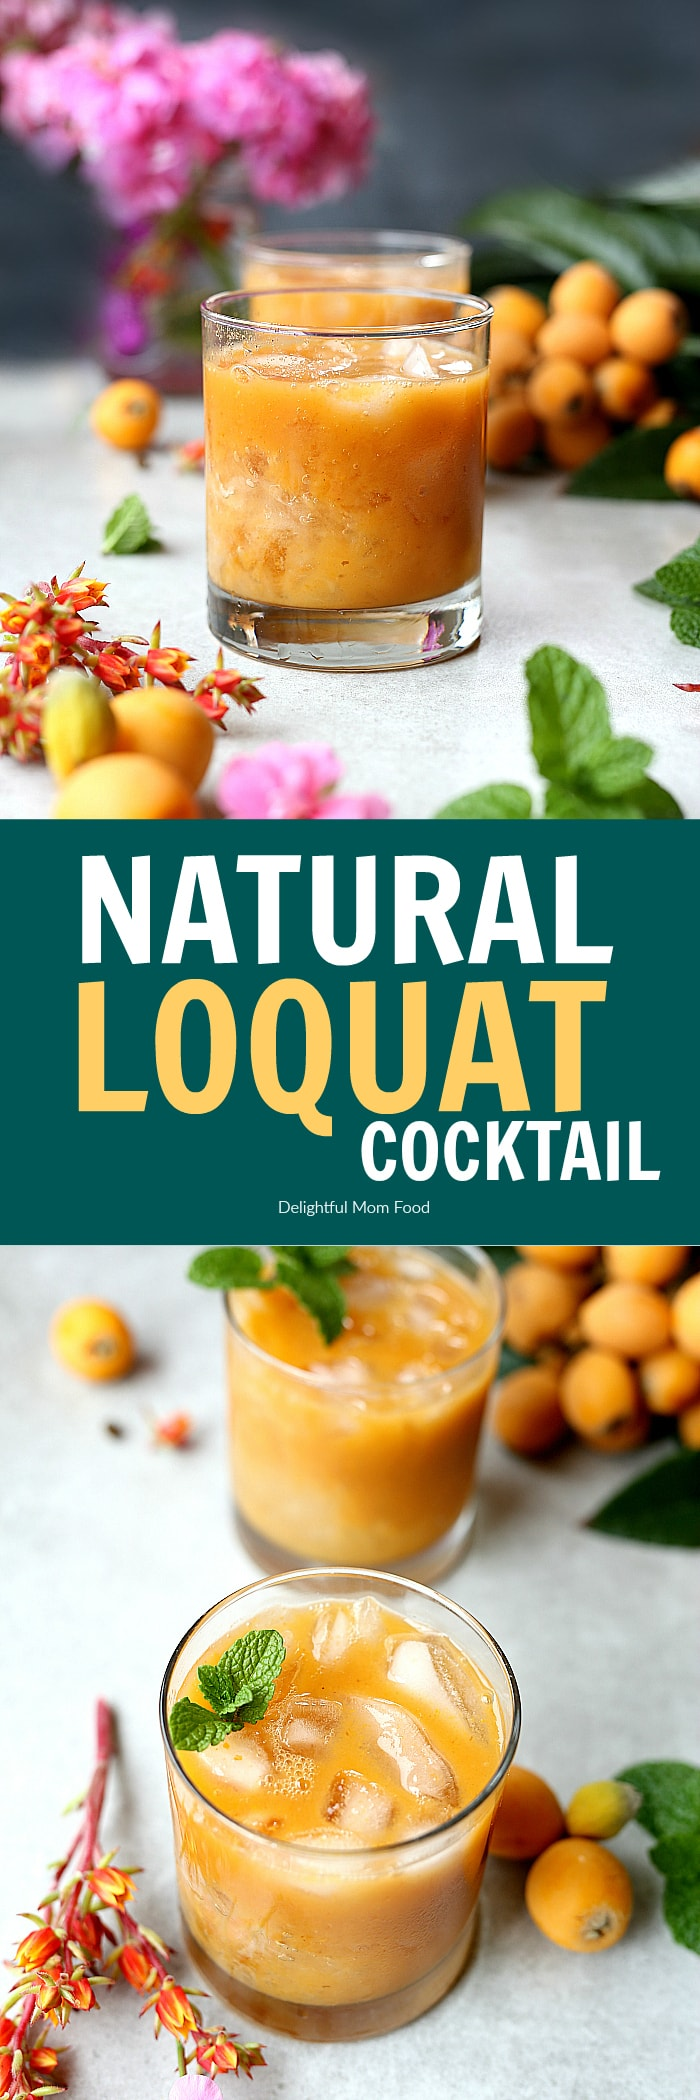 Fresh loquat cocktail recipe mixed in a blender and naturally made with tequila and a splash of sweet orange juice! #cocktail #drinks #recipe #loquat #tequila #glutenfree | Recipe at delightfulmomfood.com